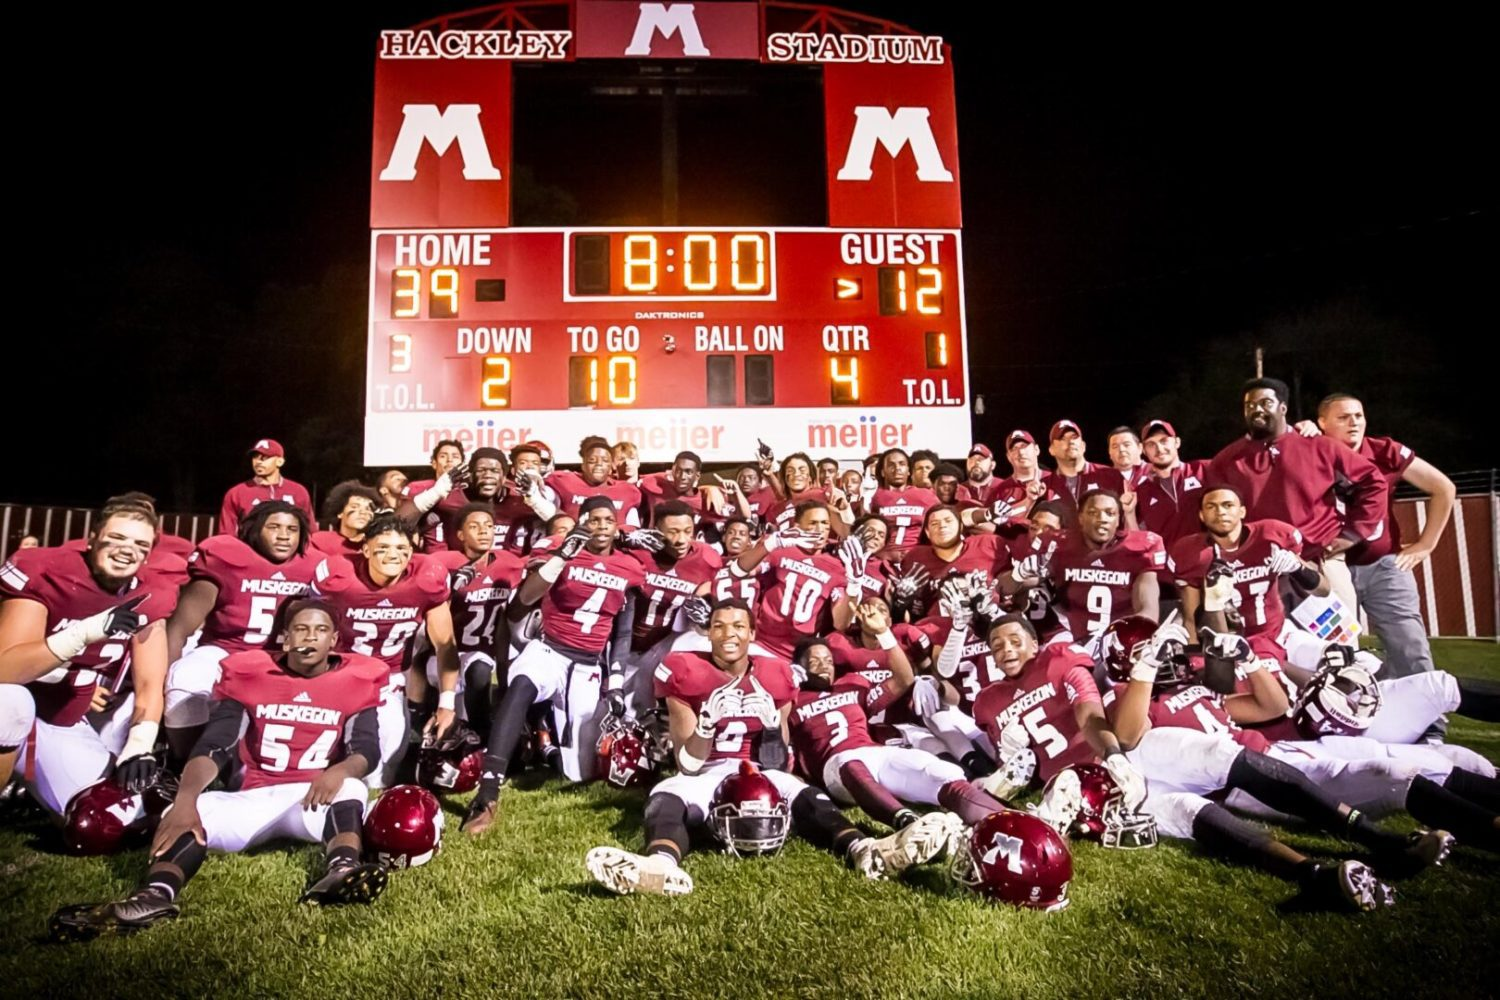 Pimpleton has a big night as Muskegon beats Grandville 39-12, claims 800th football victory